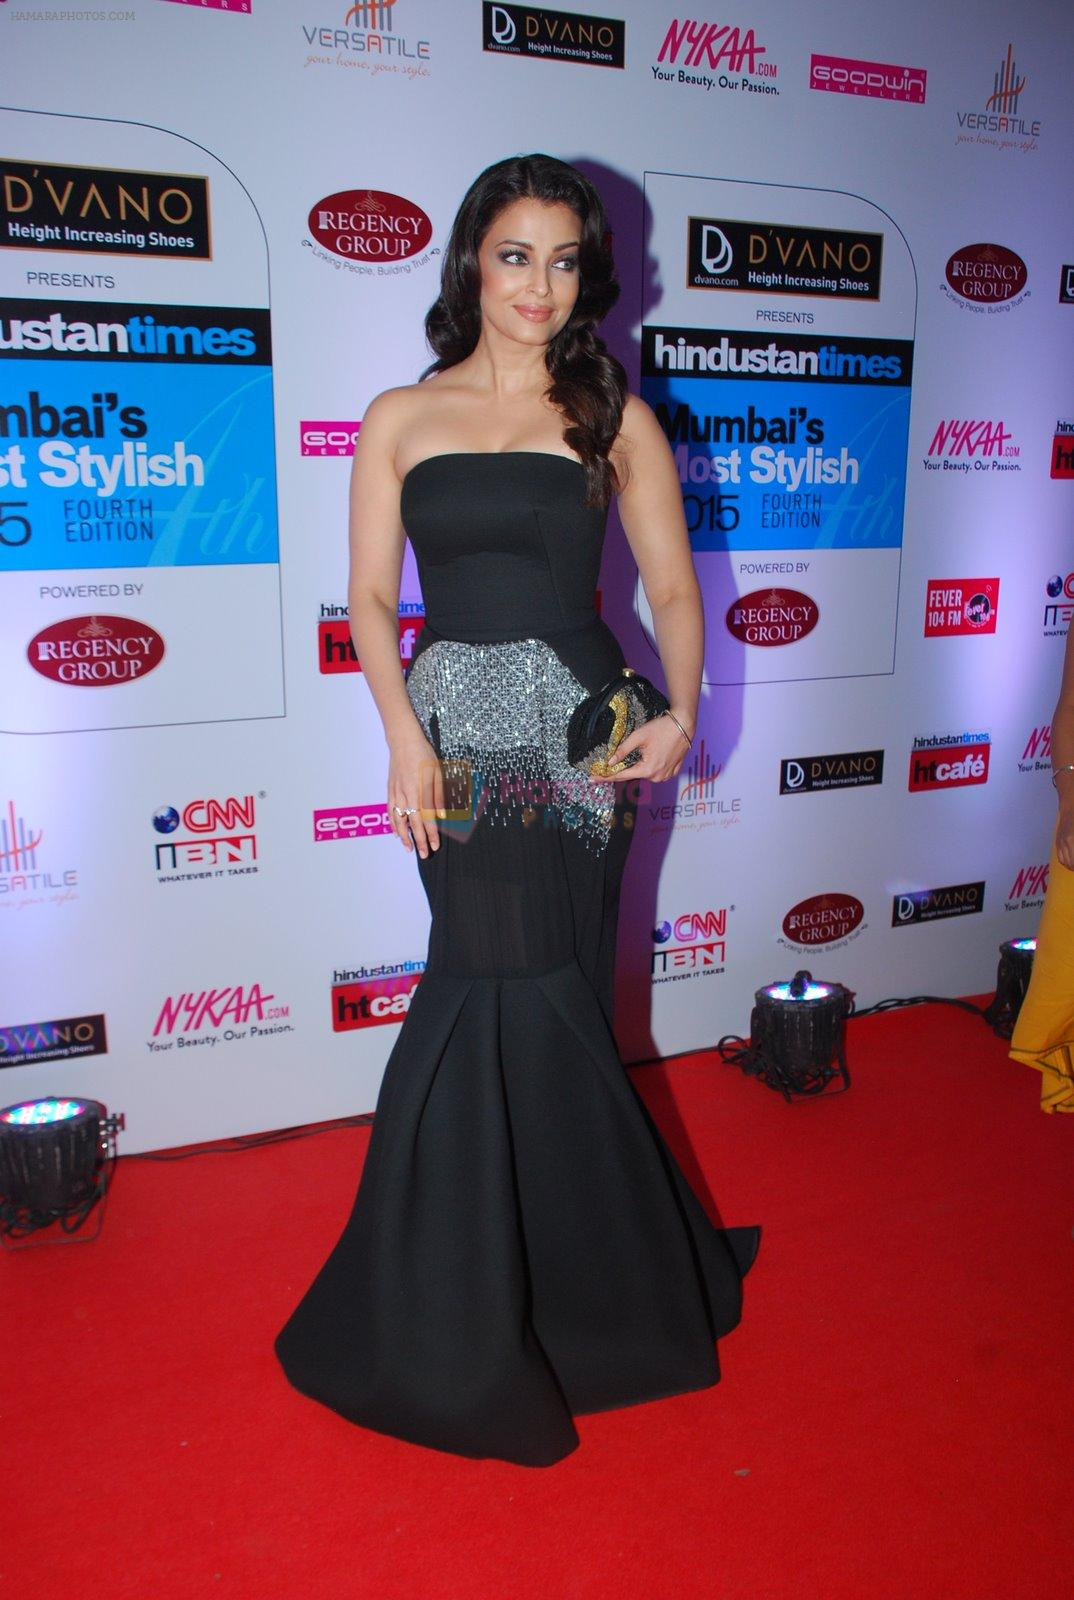 Aishwarya Rai Bachchan at HT Mumbai's Most Stylish Awards 2015 in Mumbai on 26th March 2015